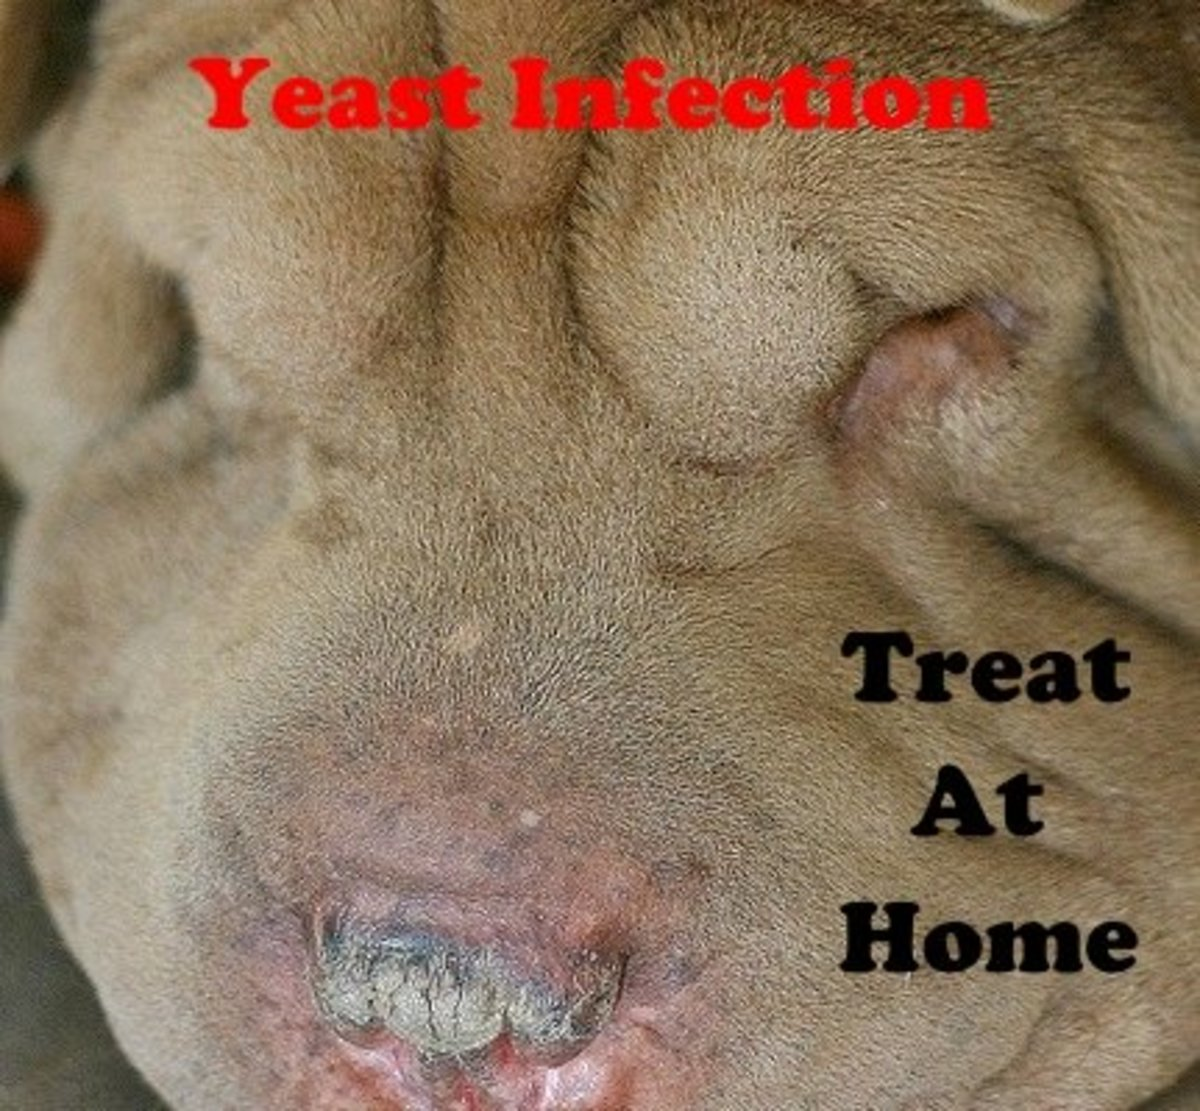 A yeast infection can be treated at home without going to the vet.